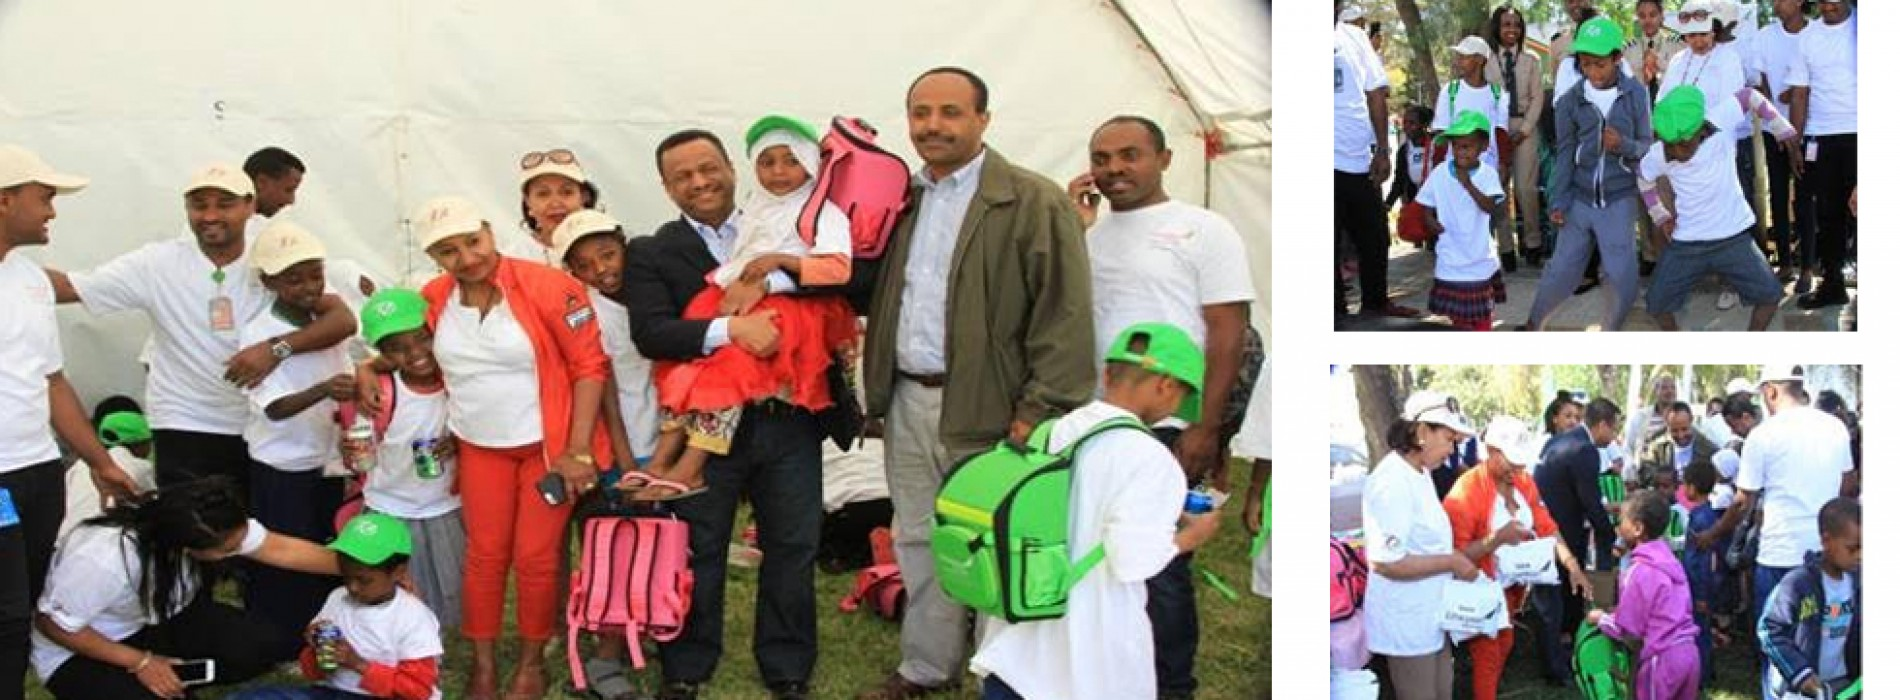 Ethiopian marks annual Christmas party day with orphans